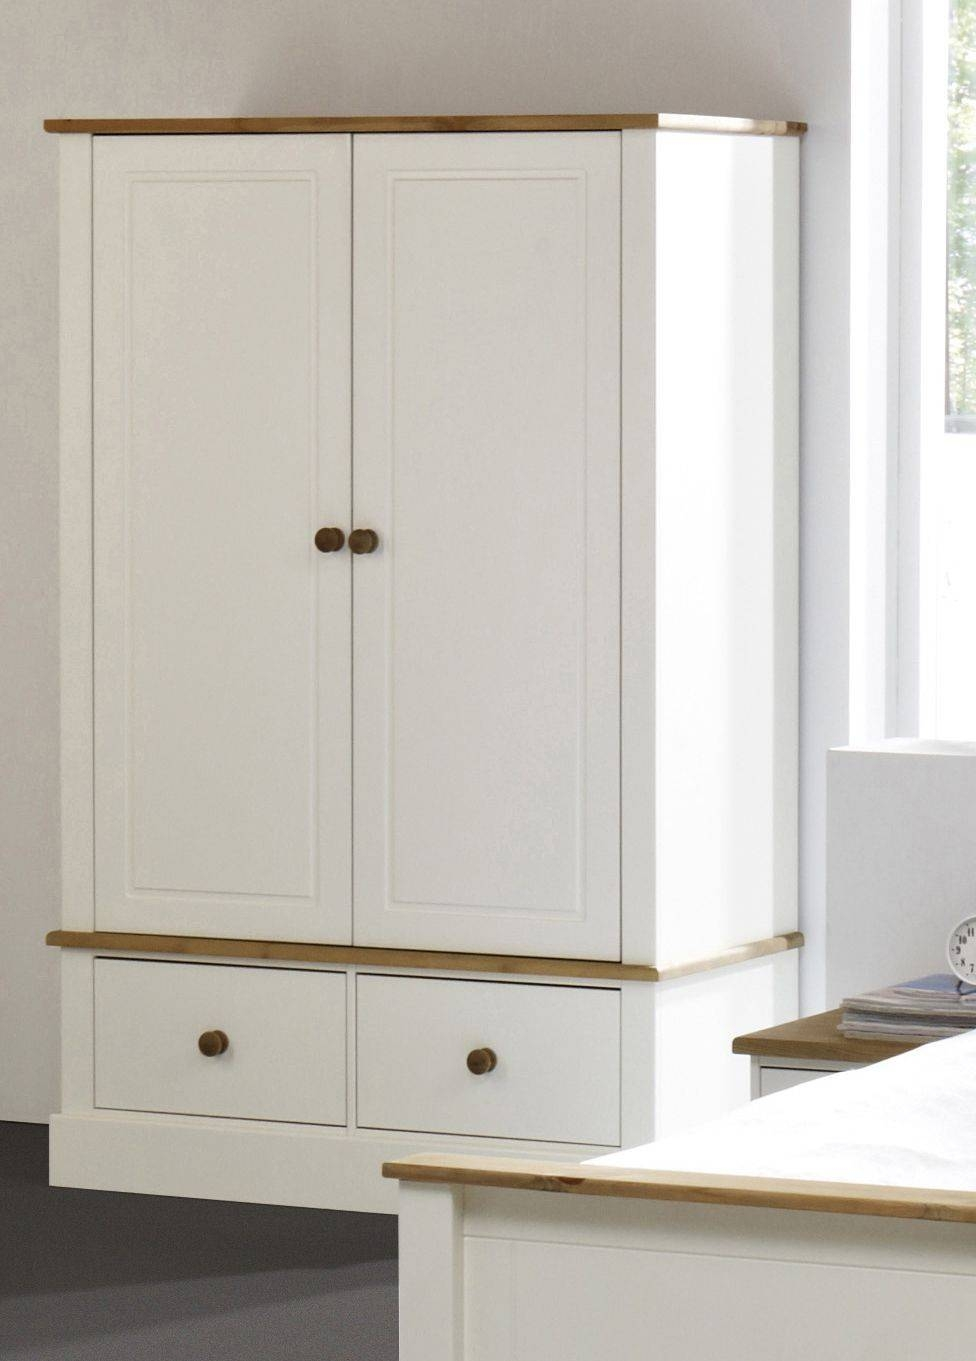 Balmoral White Double Wardrobe With 2 Drawers | Bedroom Furniture inside White Double Wardrobes With Drawers (Image 1 of 15)